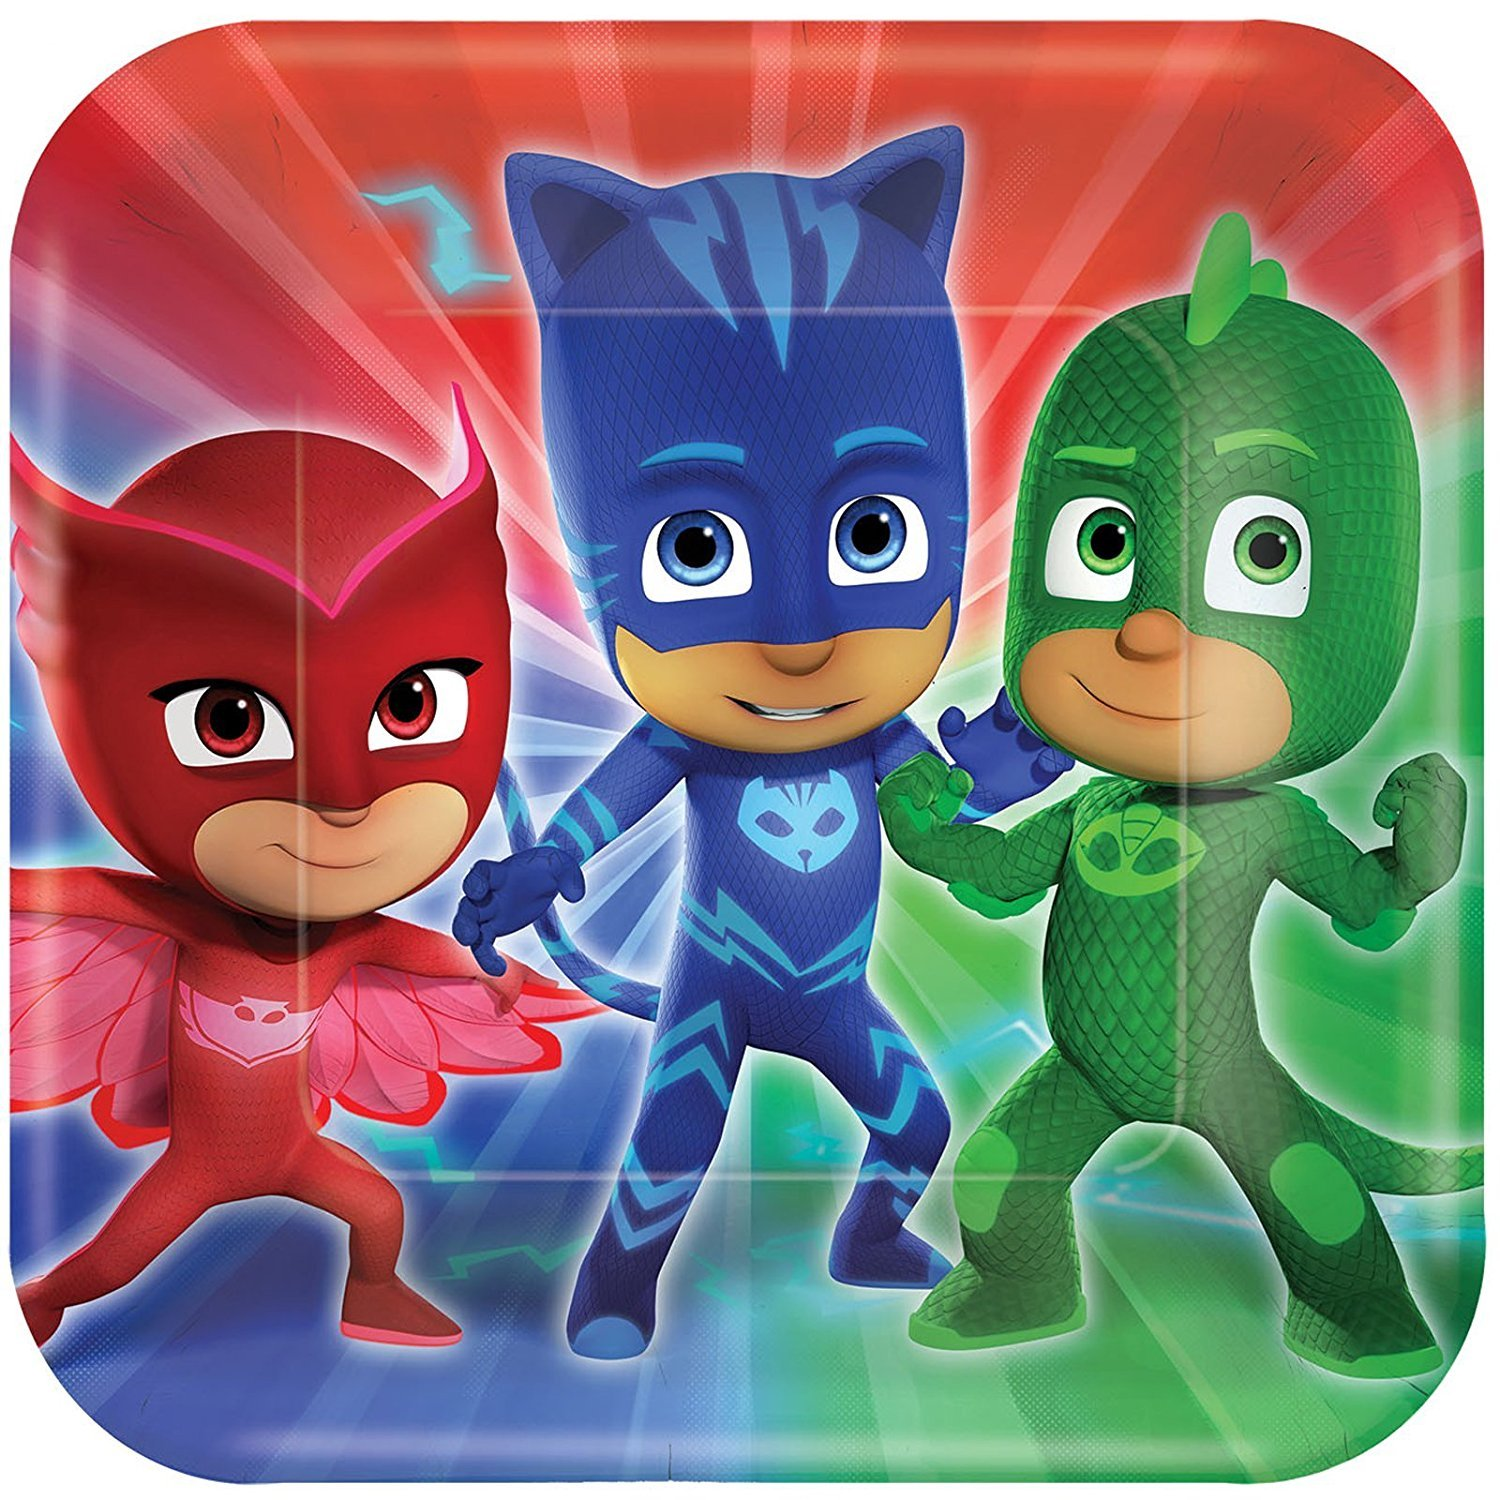 Amazon.com: PJ Masks Party Supplies Pack for 16 Guests: Straws, Dinner Plates, Luncheon Napkins, Table Cover, and Cups: Toys & Games